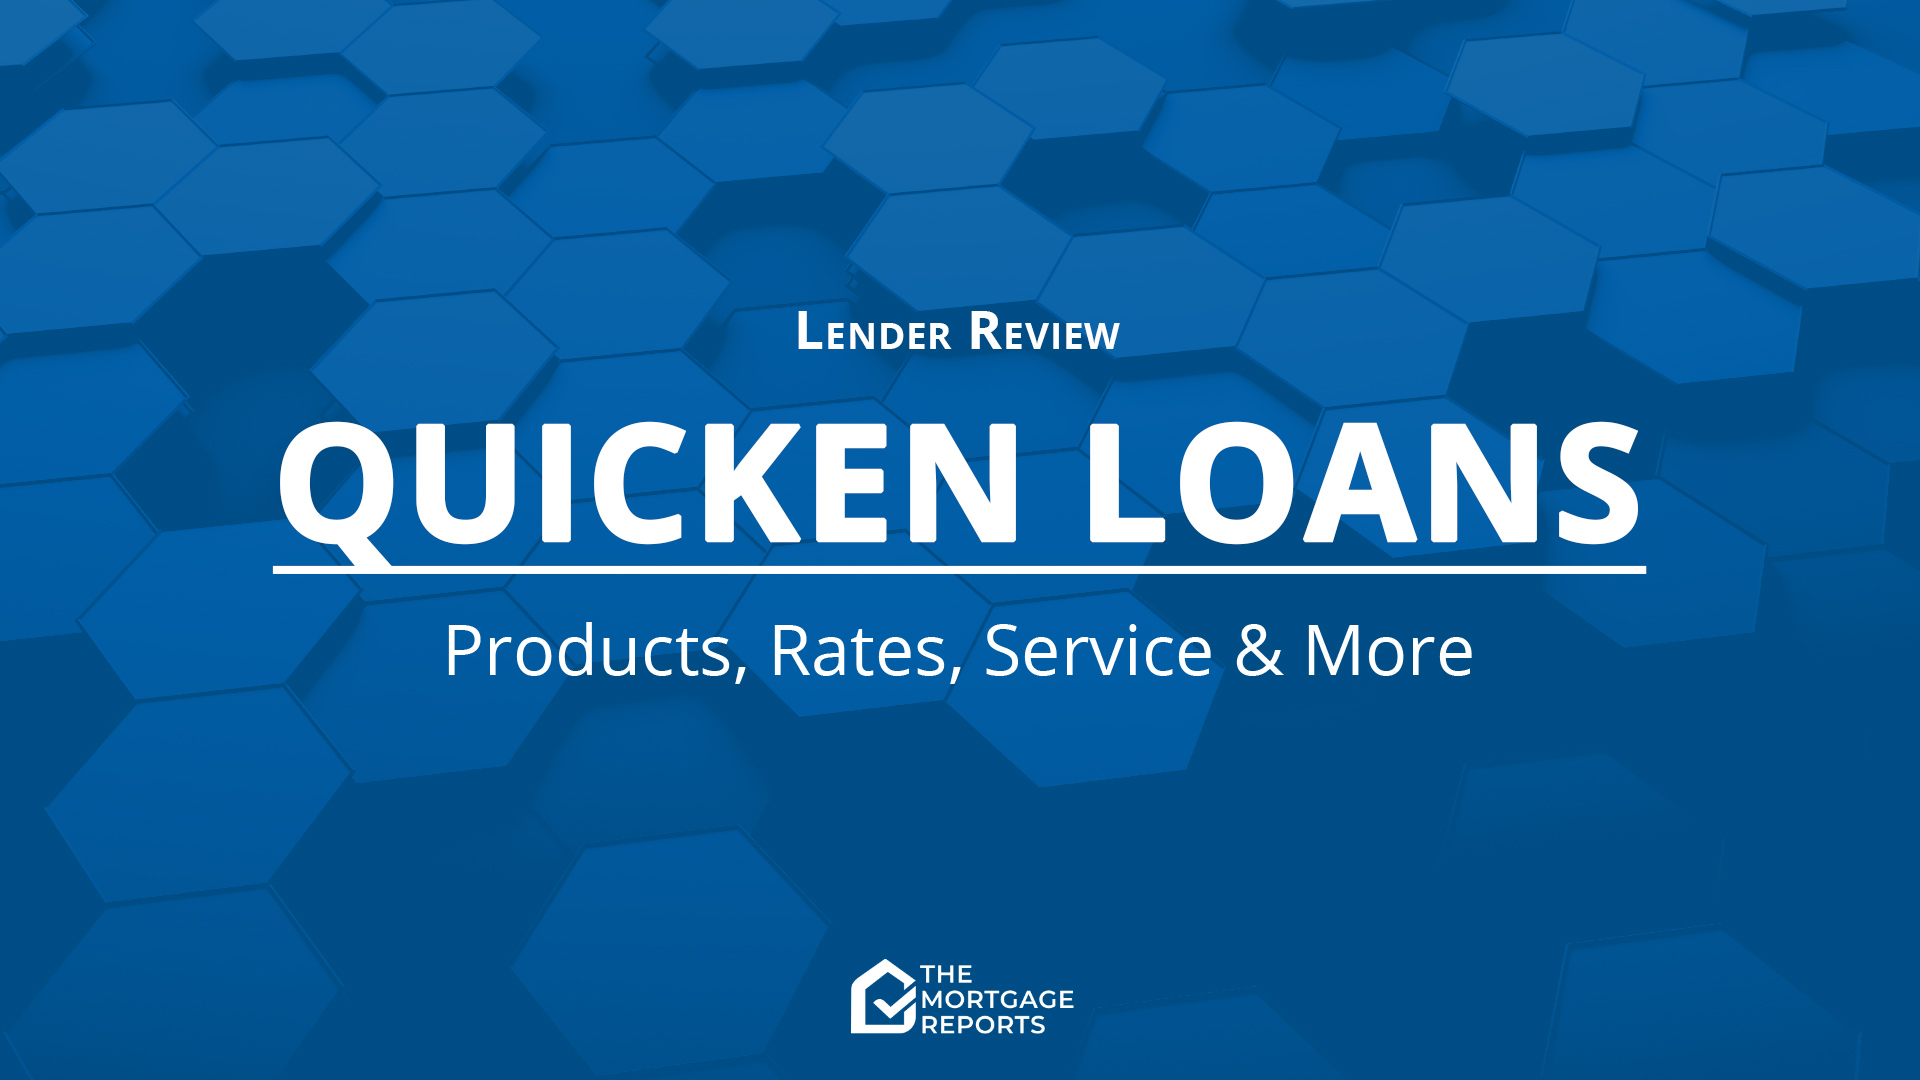 Quicken Loans Mortgage Review for 2020